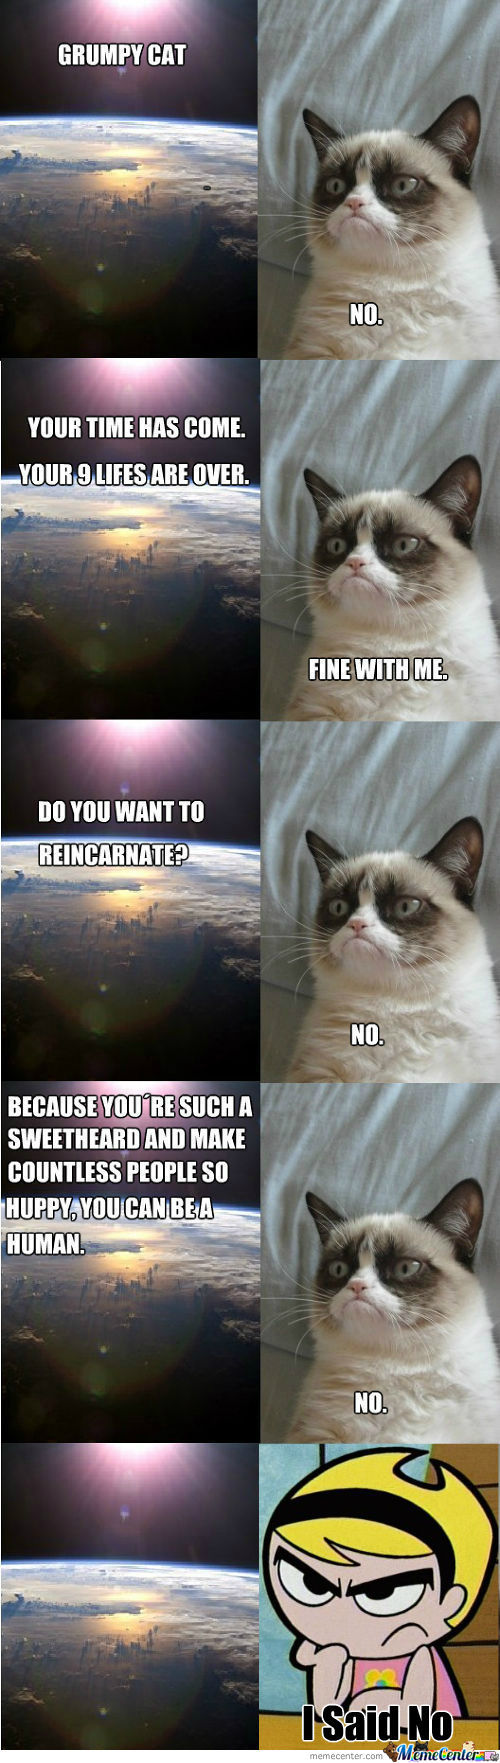 [RMX] Grumpy Cat And The Universe